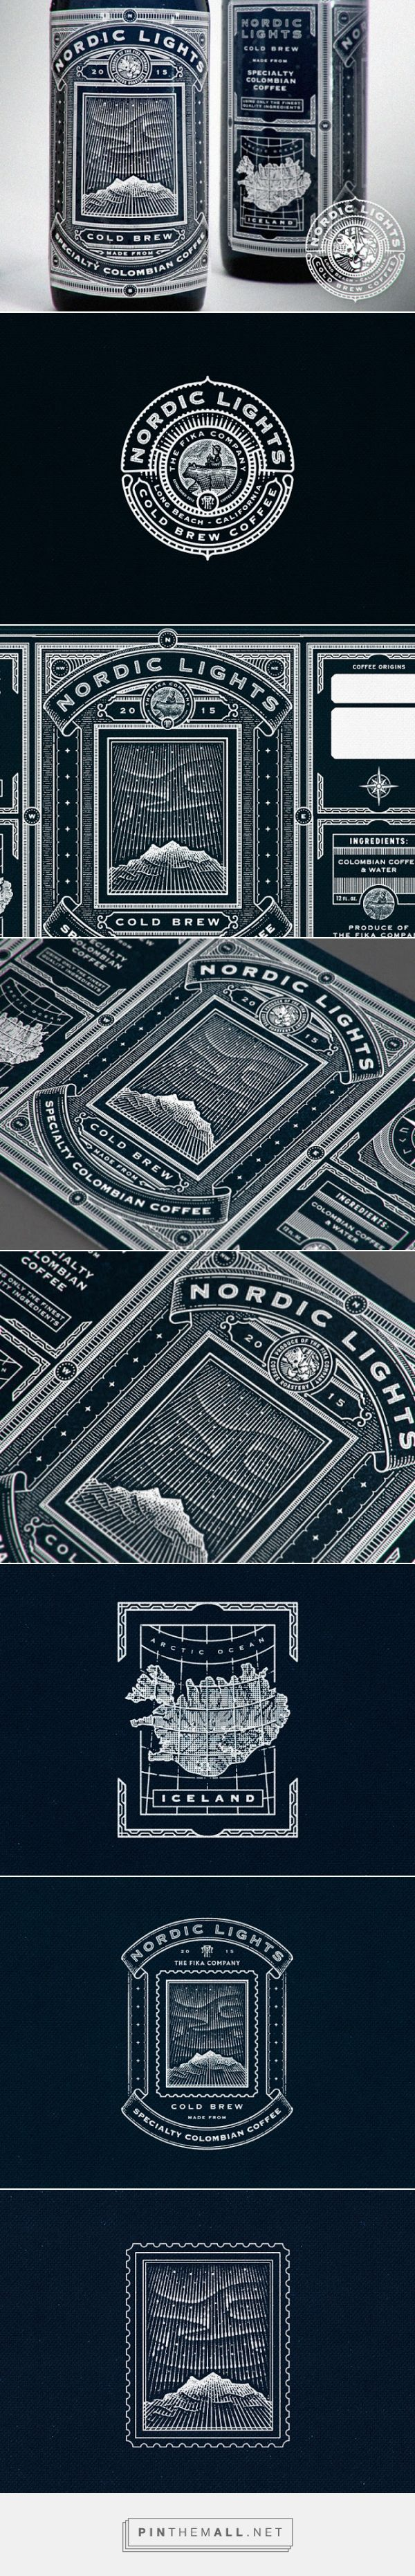 Nordic Lights Coffee packaging designed by Ye Olde Studio - http://www.packagingoftheworld.com/2016/01/nordic-lights.html - created via https://pinthemall.net